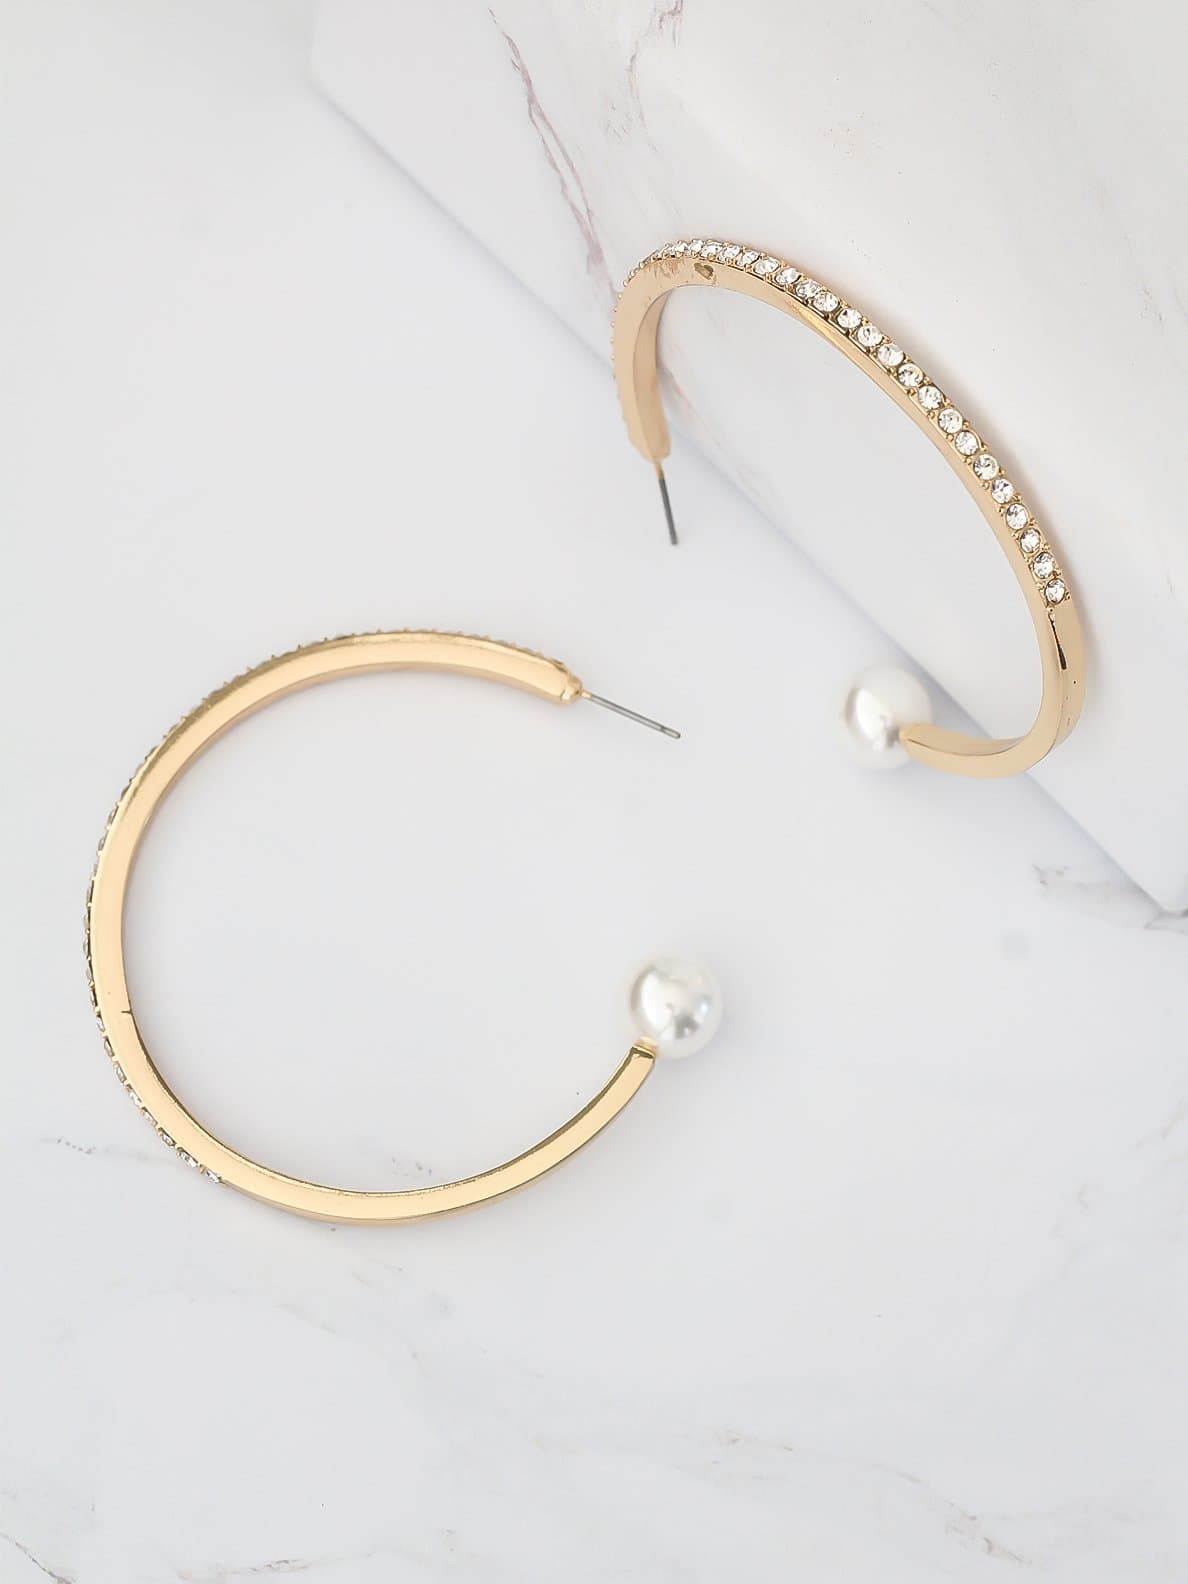 Bellofox Embellished Pearl Hoops Earrings BE3480